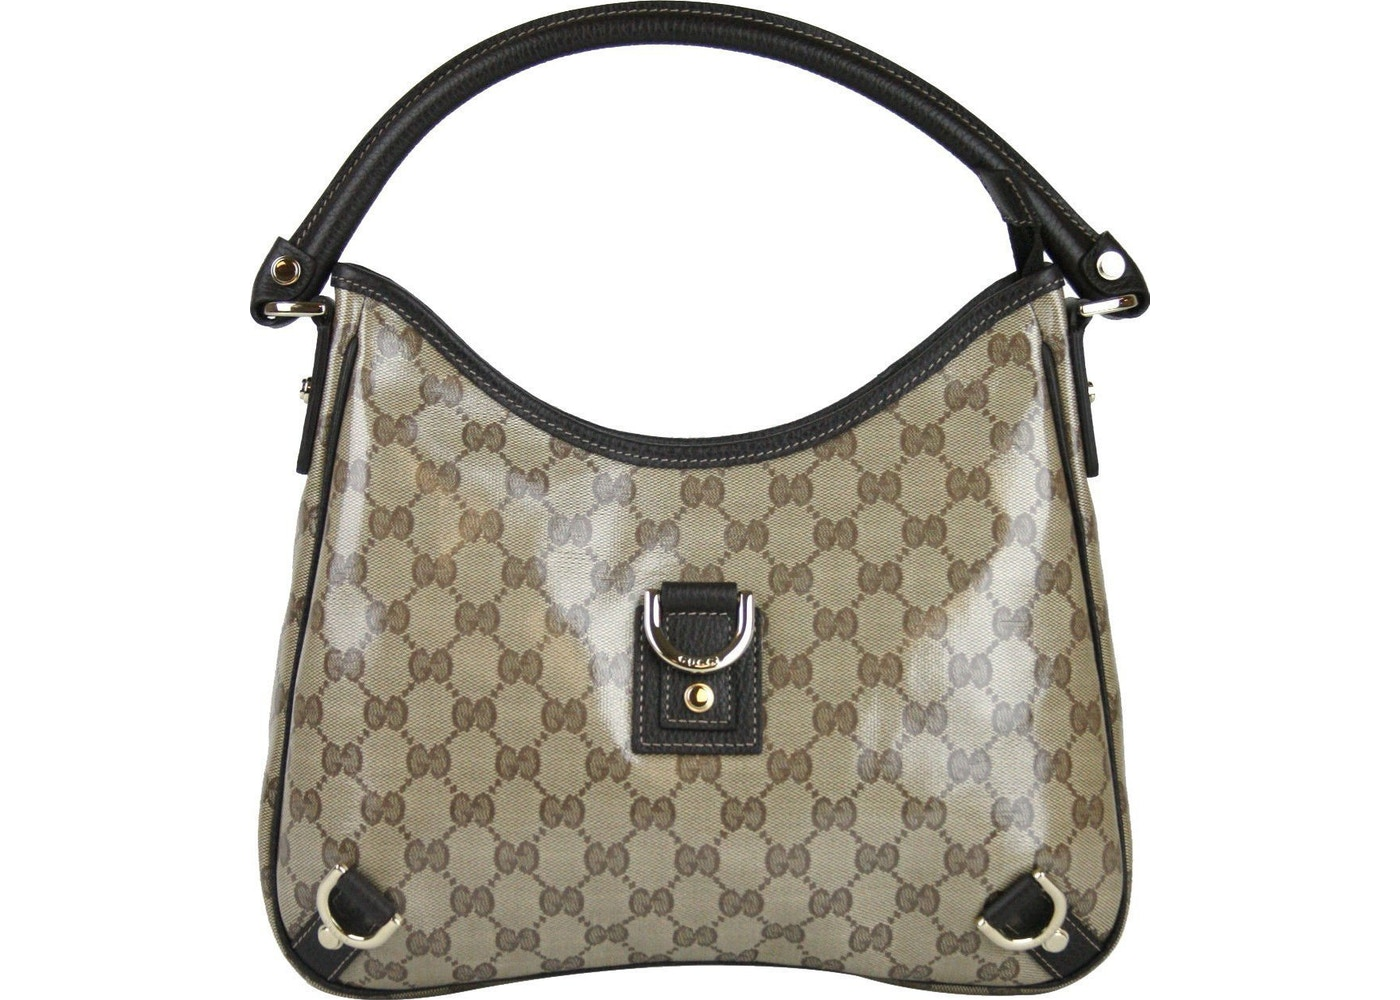 29ef74a8edc Amazon.com: Gucci Brown Crystal Canvas Abbey Tote Convertible Handbag  268641: http://amzn.to/1MzGoI3